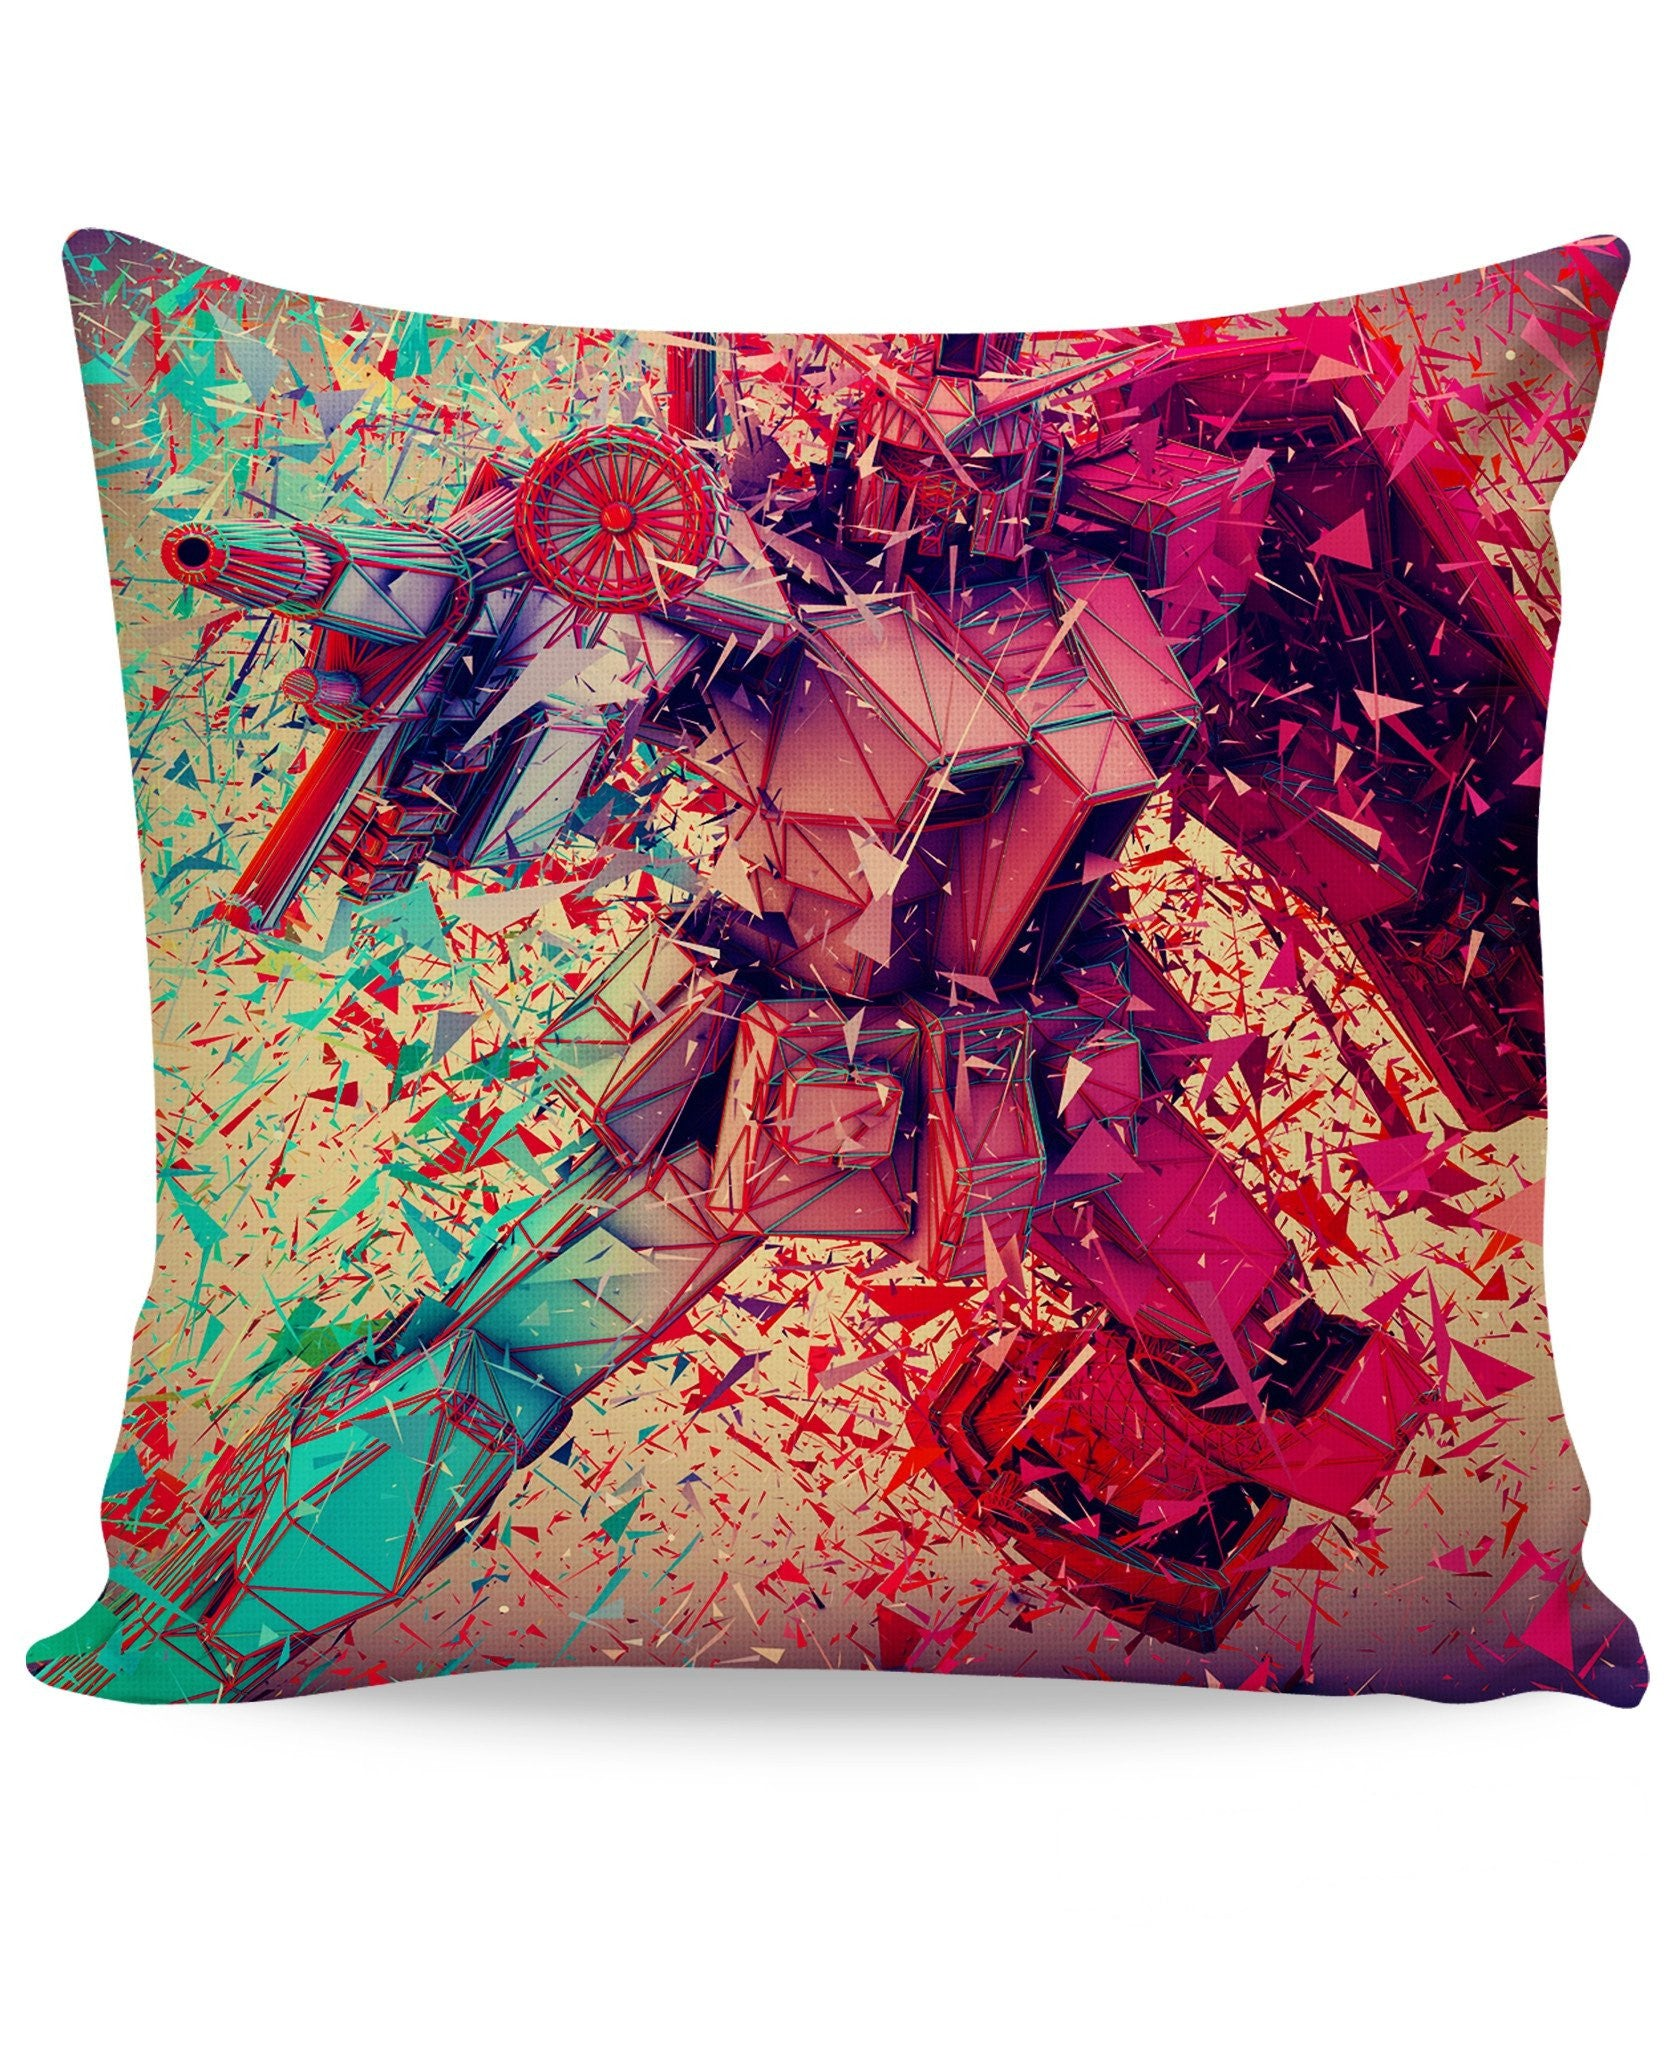 3D Transformers Couch Pillow - TShirtsRUS.co